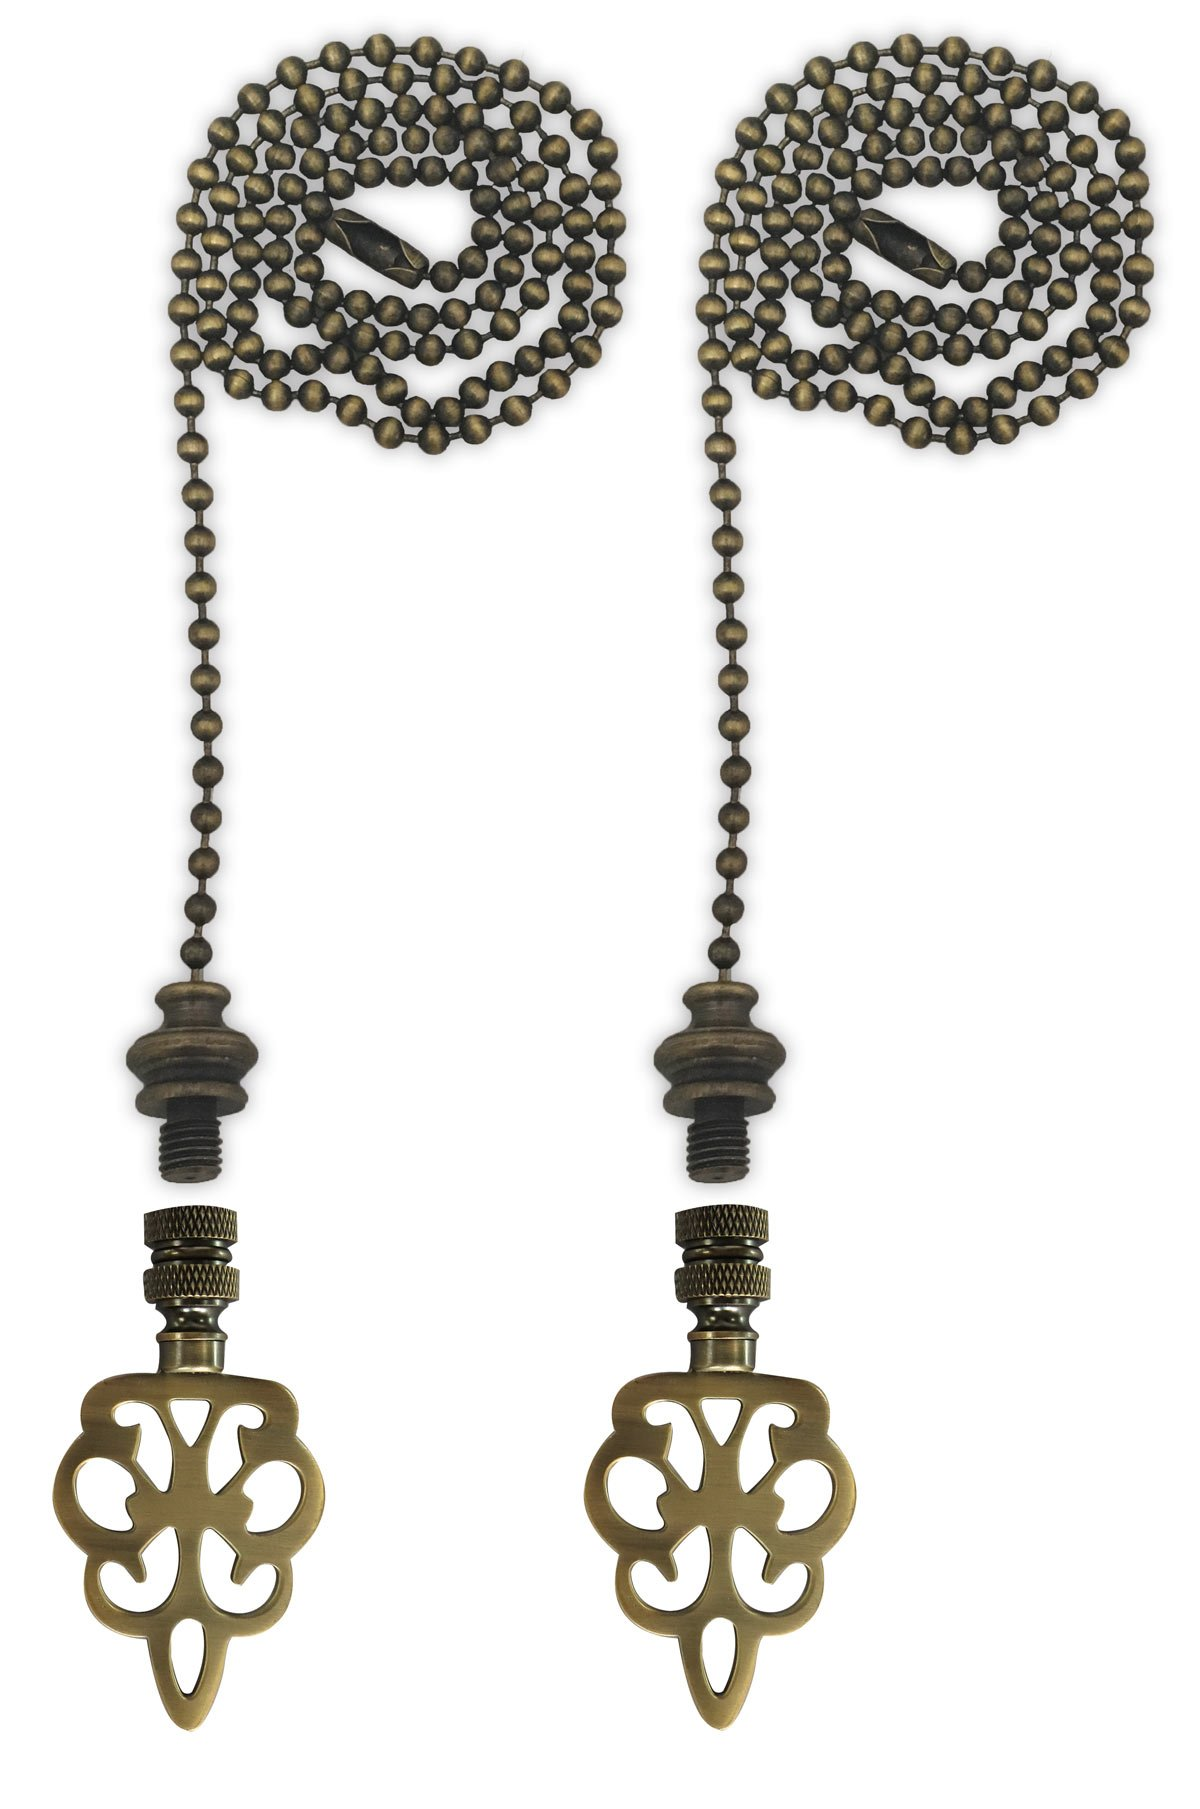 Royal Designs Fan Pull Chain with Open Filigree Motif Finial – Antique Brass – Set of 2